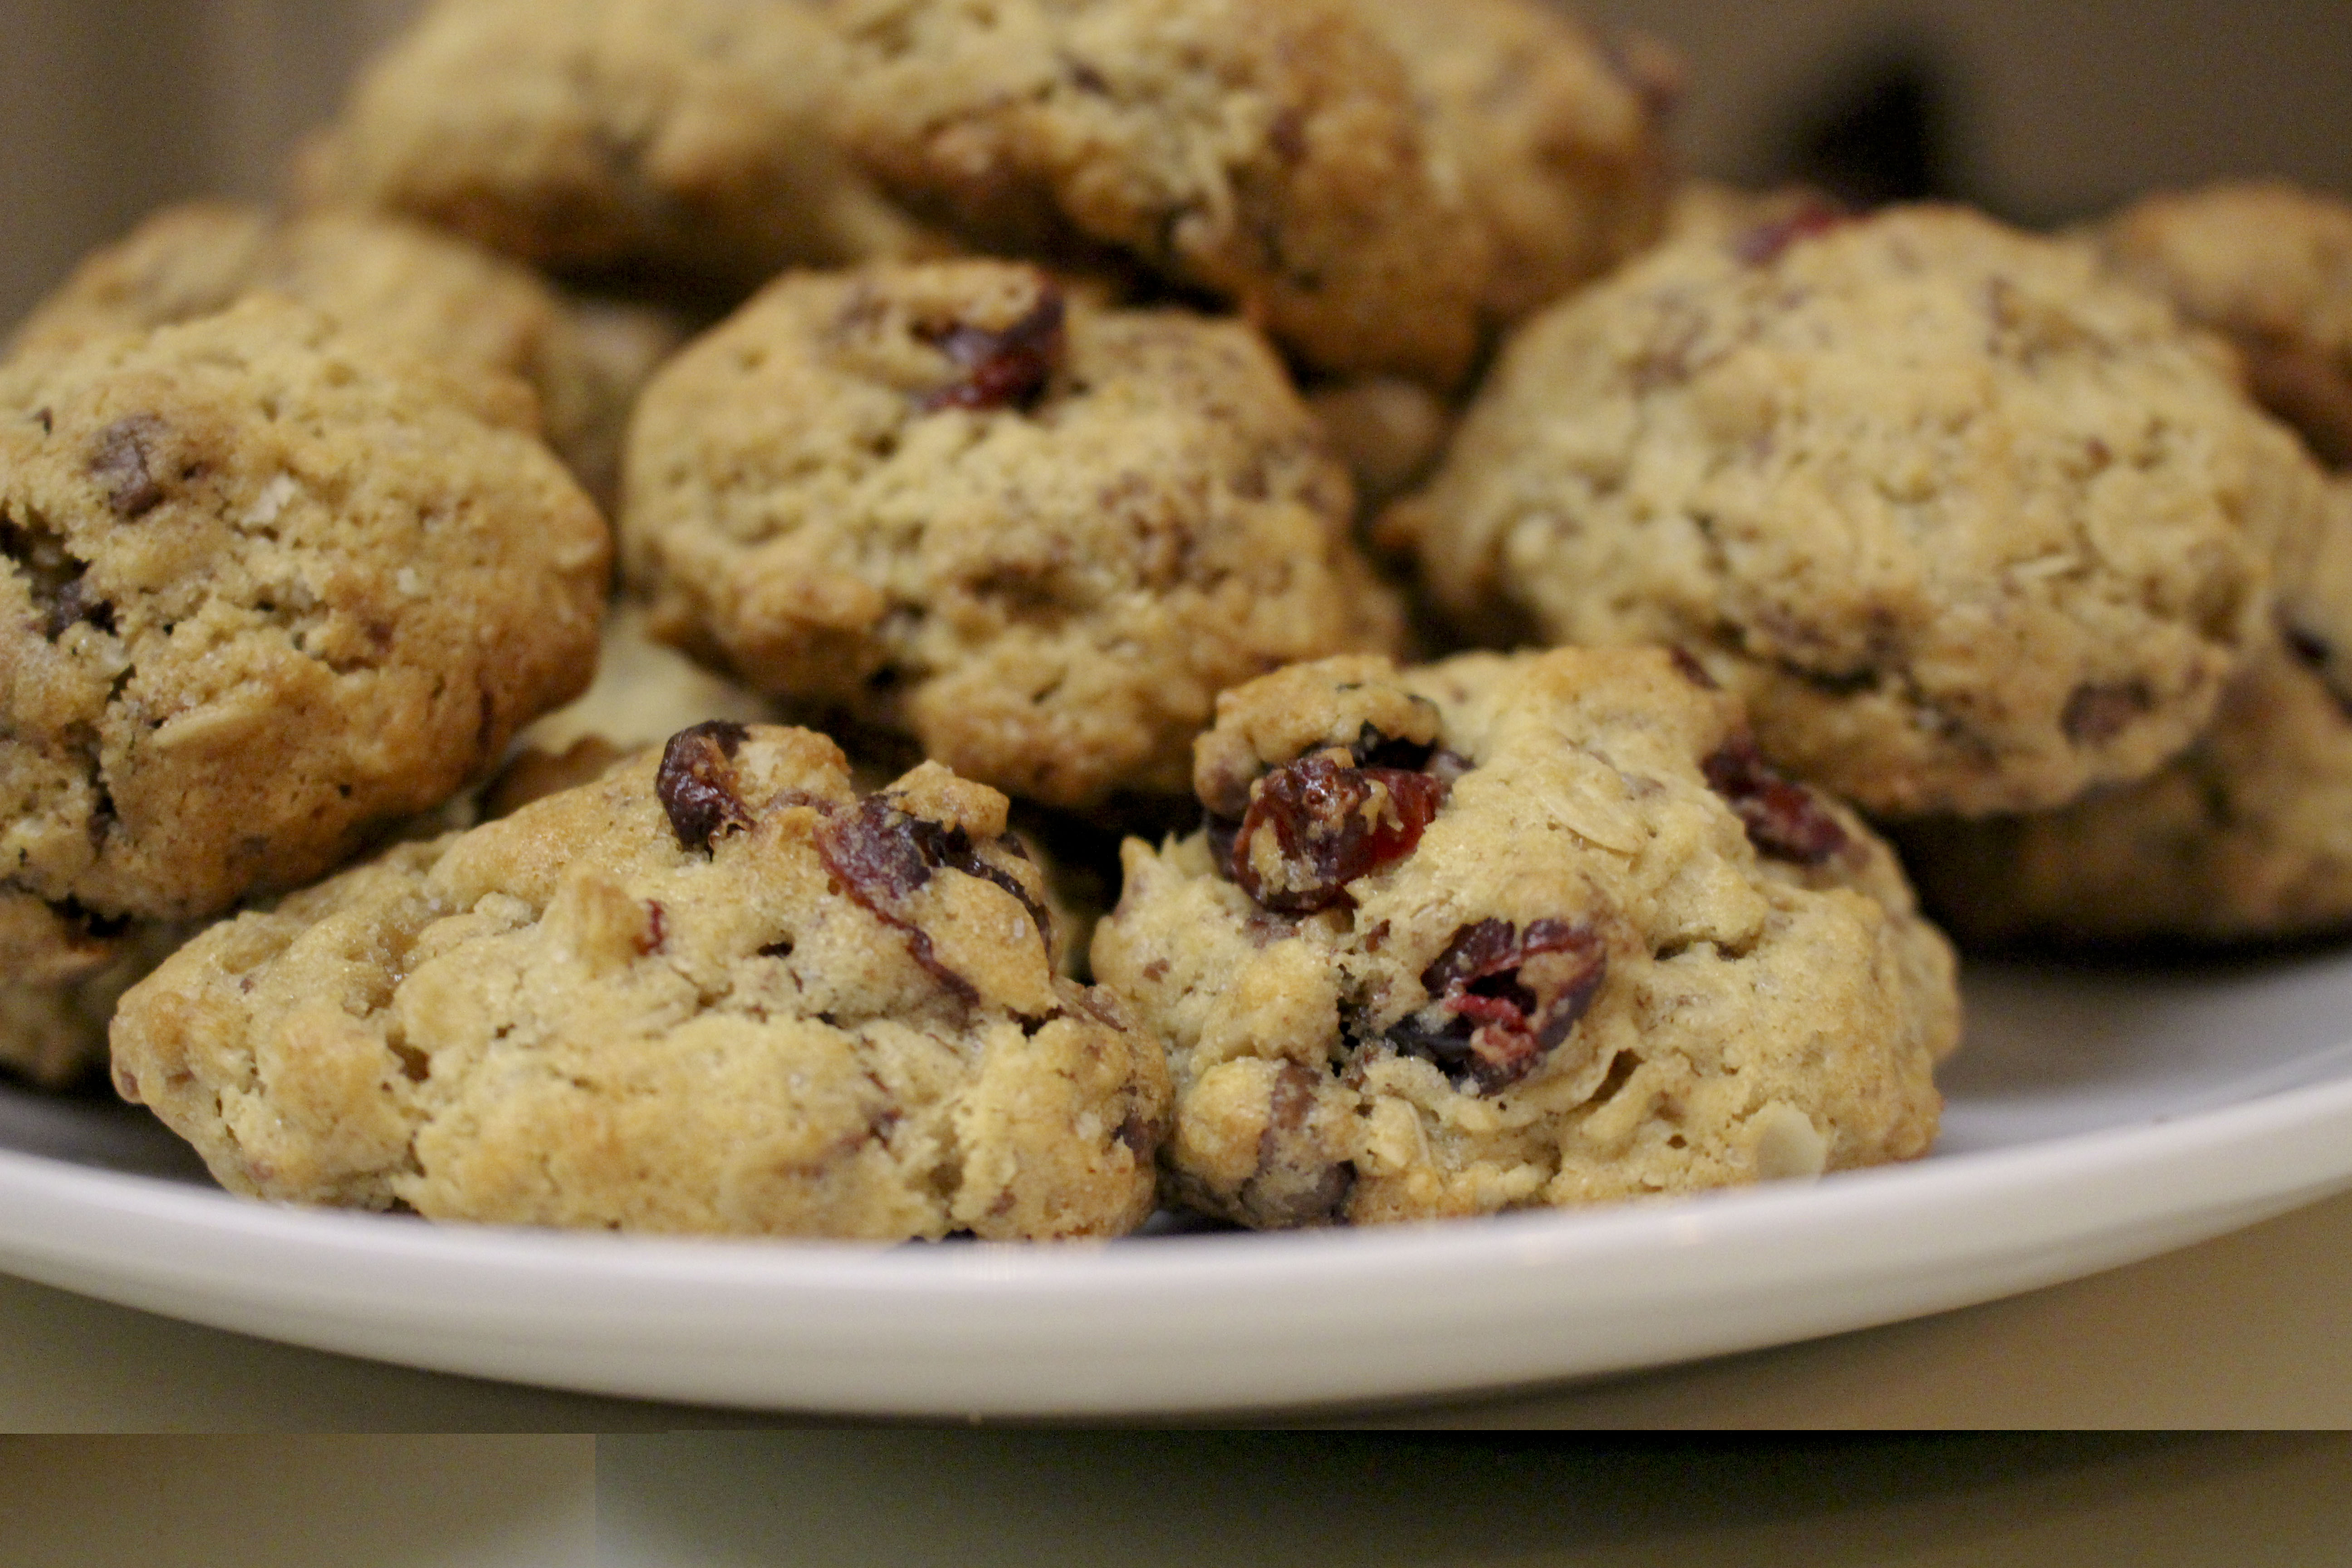 Oatmeal Cranberry Chocolate Cookies